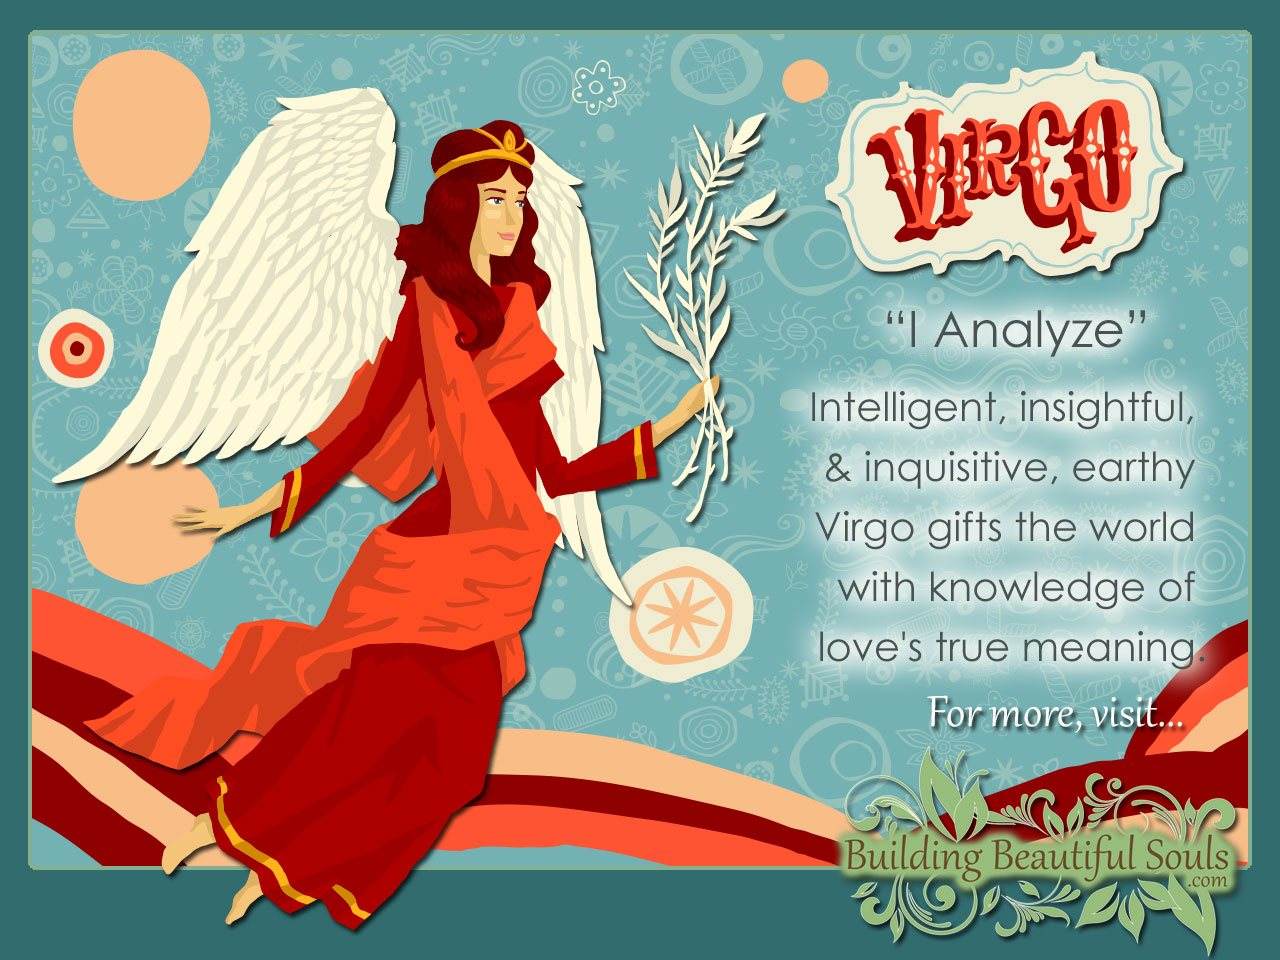 about virgo woman astrology